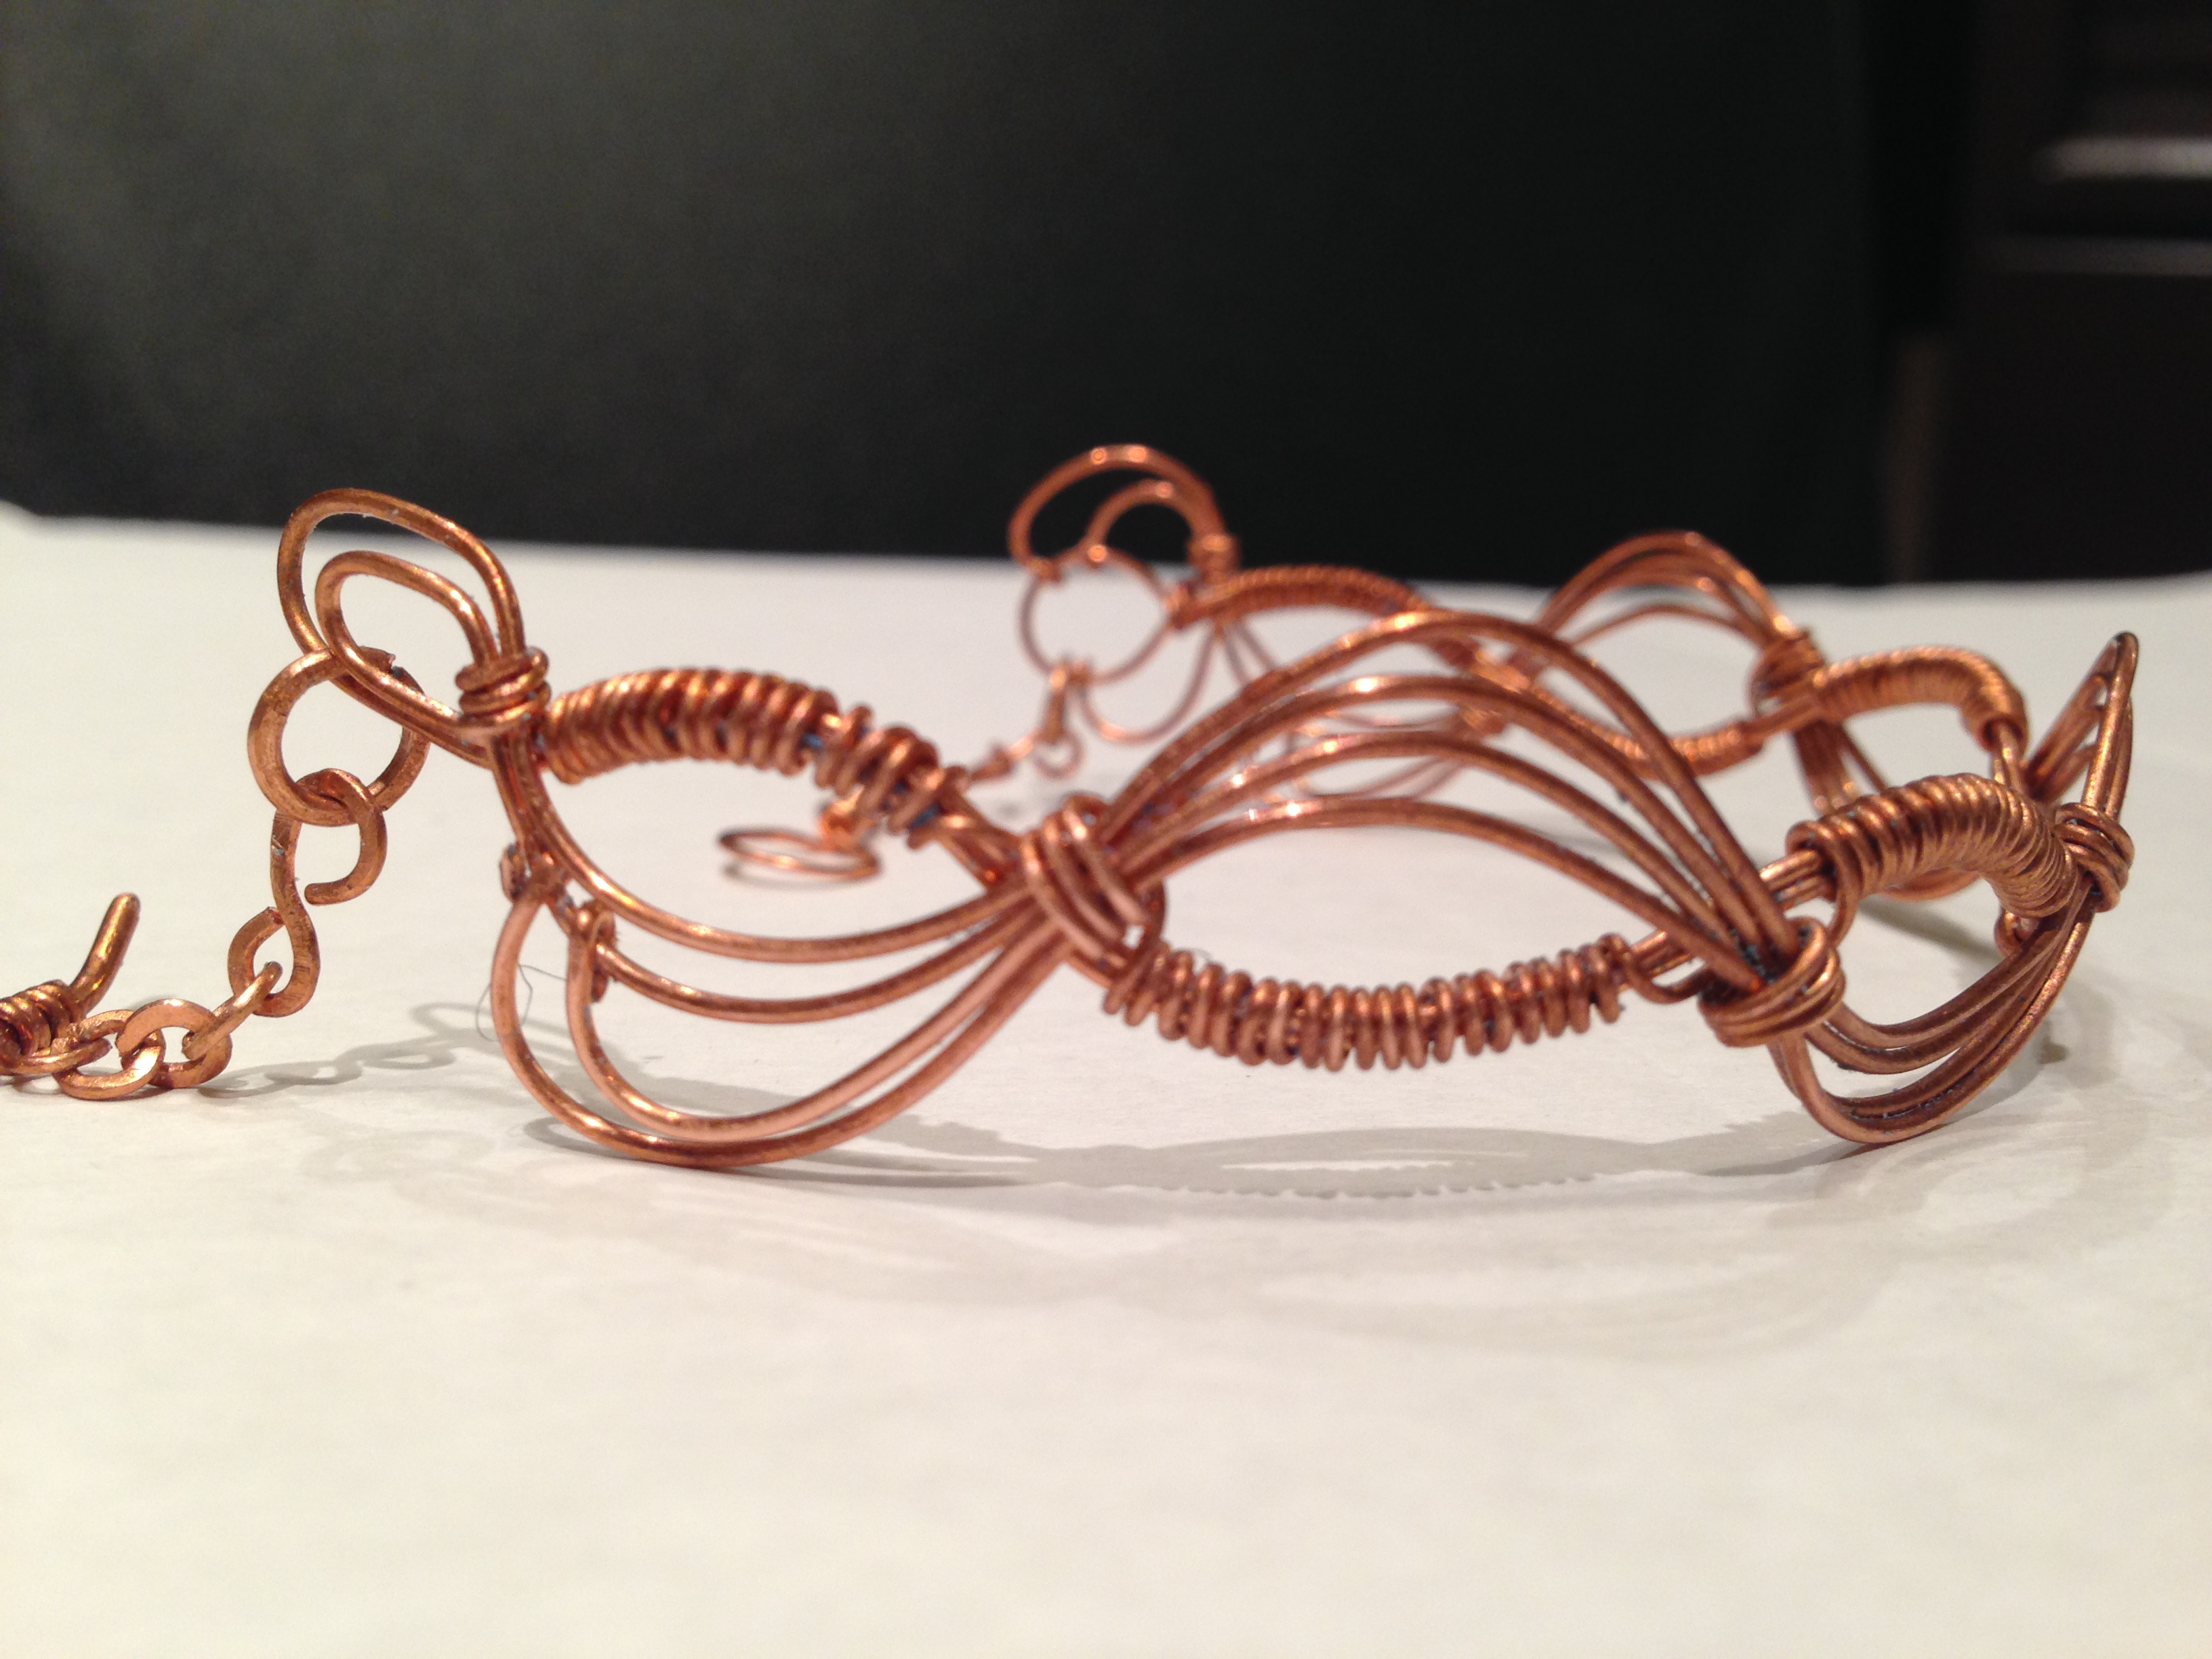 Ocean waves shape copper bracelet